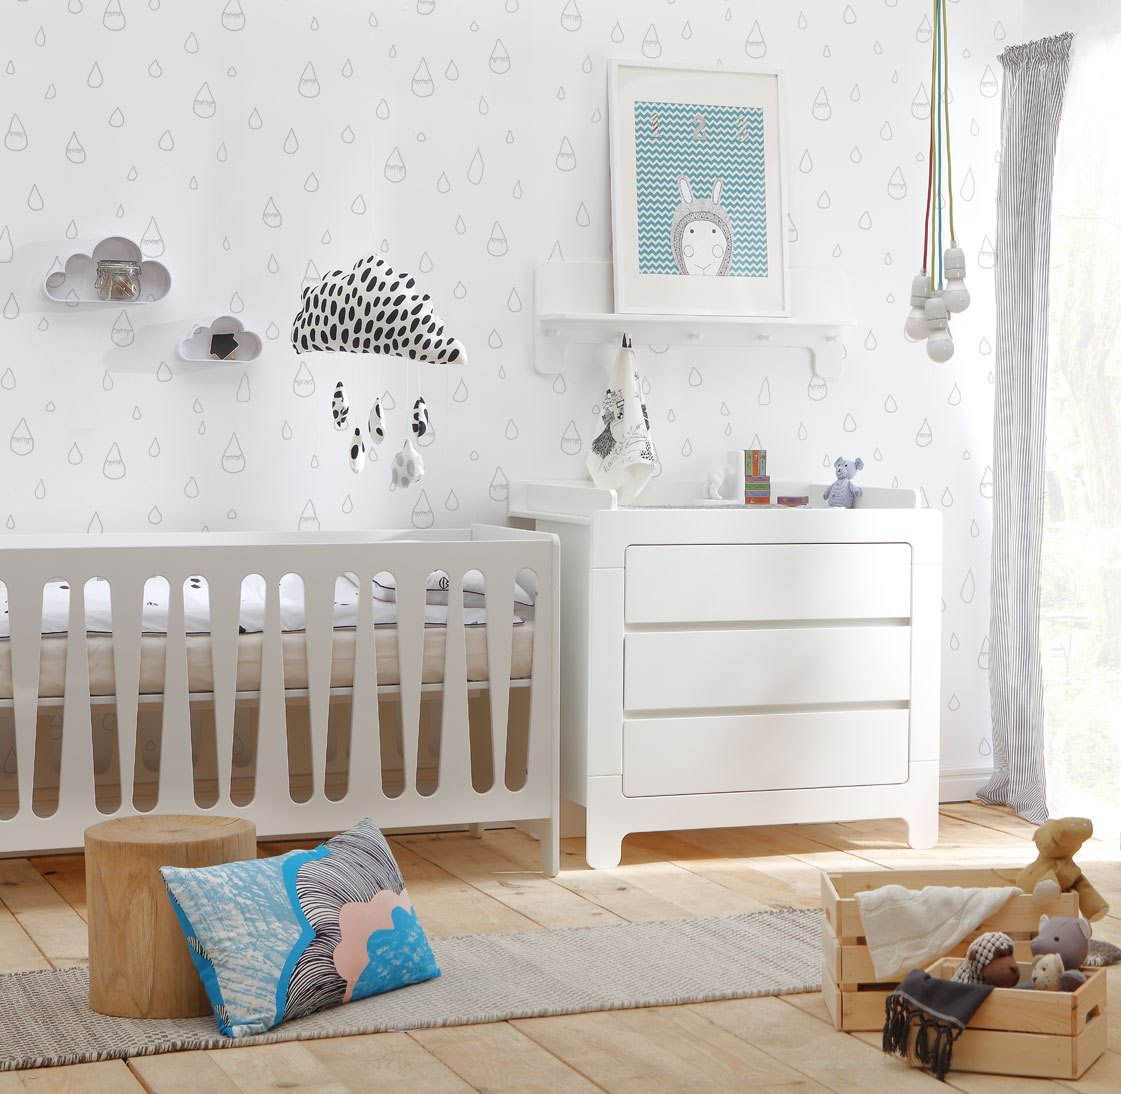 pinio moon lit 140x70 avec 1 tiroir 1 barri re offerte baby boutique en ligne. Black Bedroom Furniture Sets. Home Design Ideas